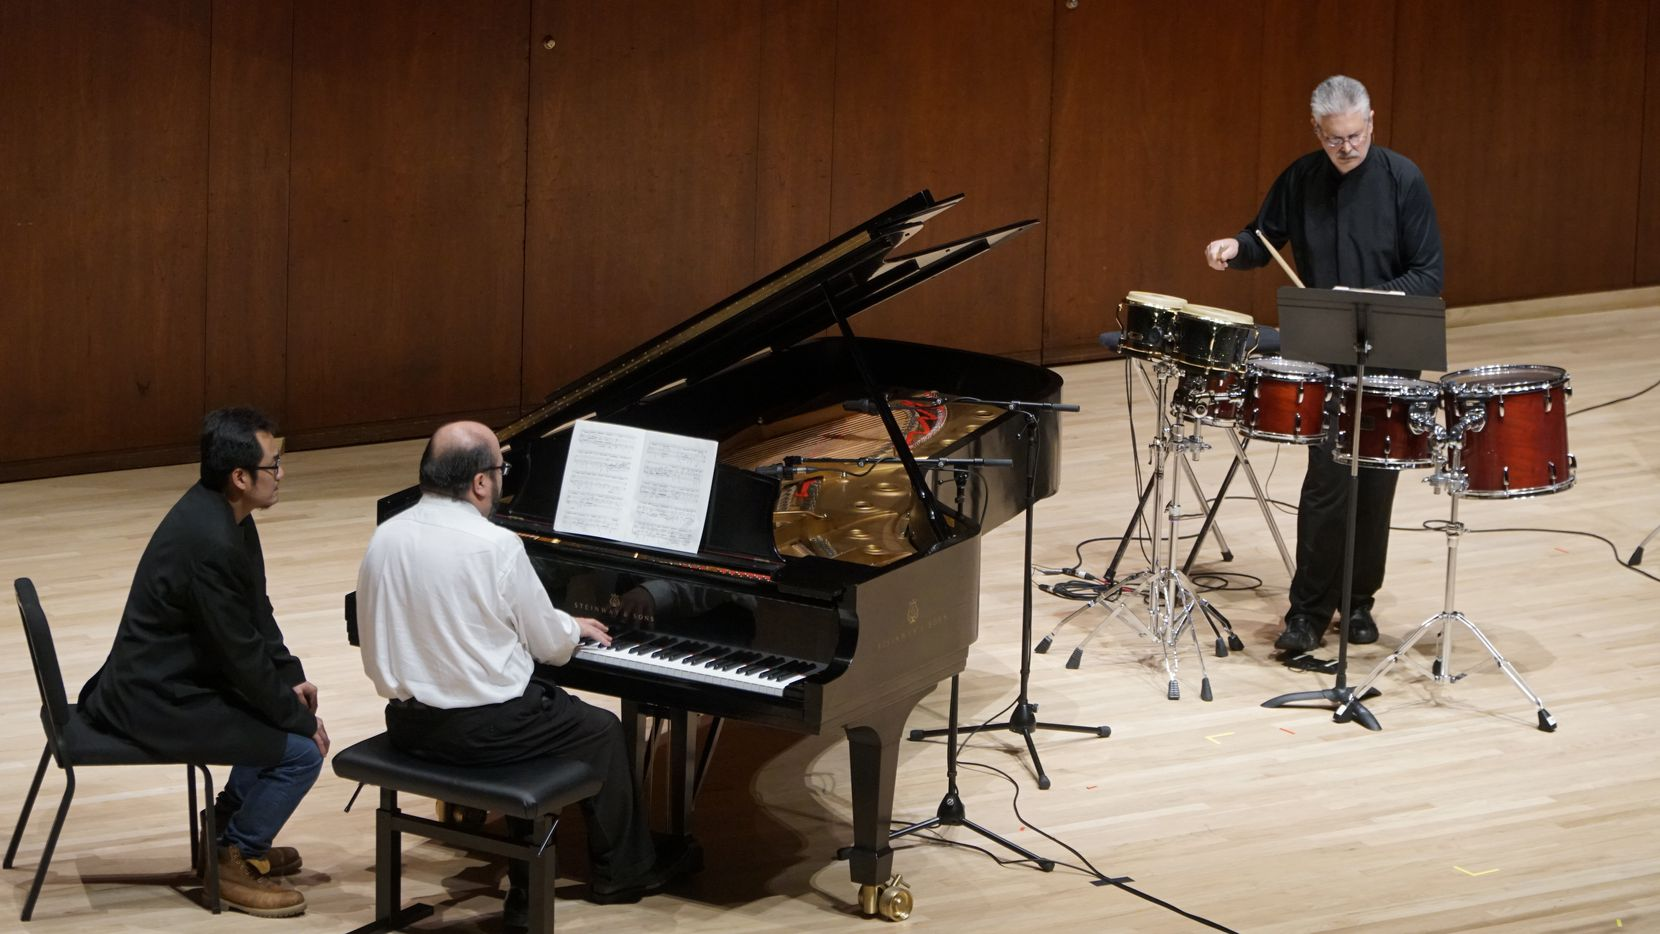 Pianist Gabriel Sanchez and percussionist Drew Lang performed in a Voices of Change concert at Caruth Auditorium at SMU on Sunday.